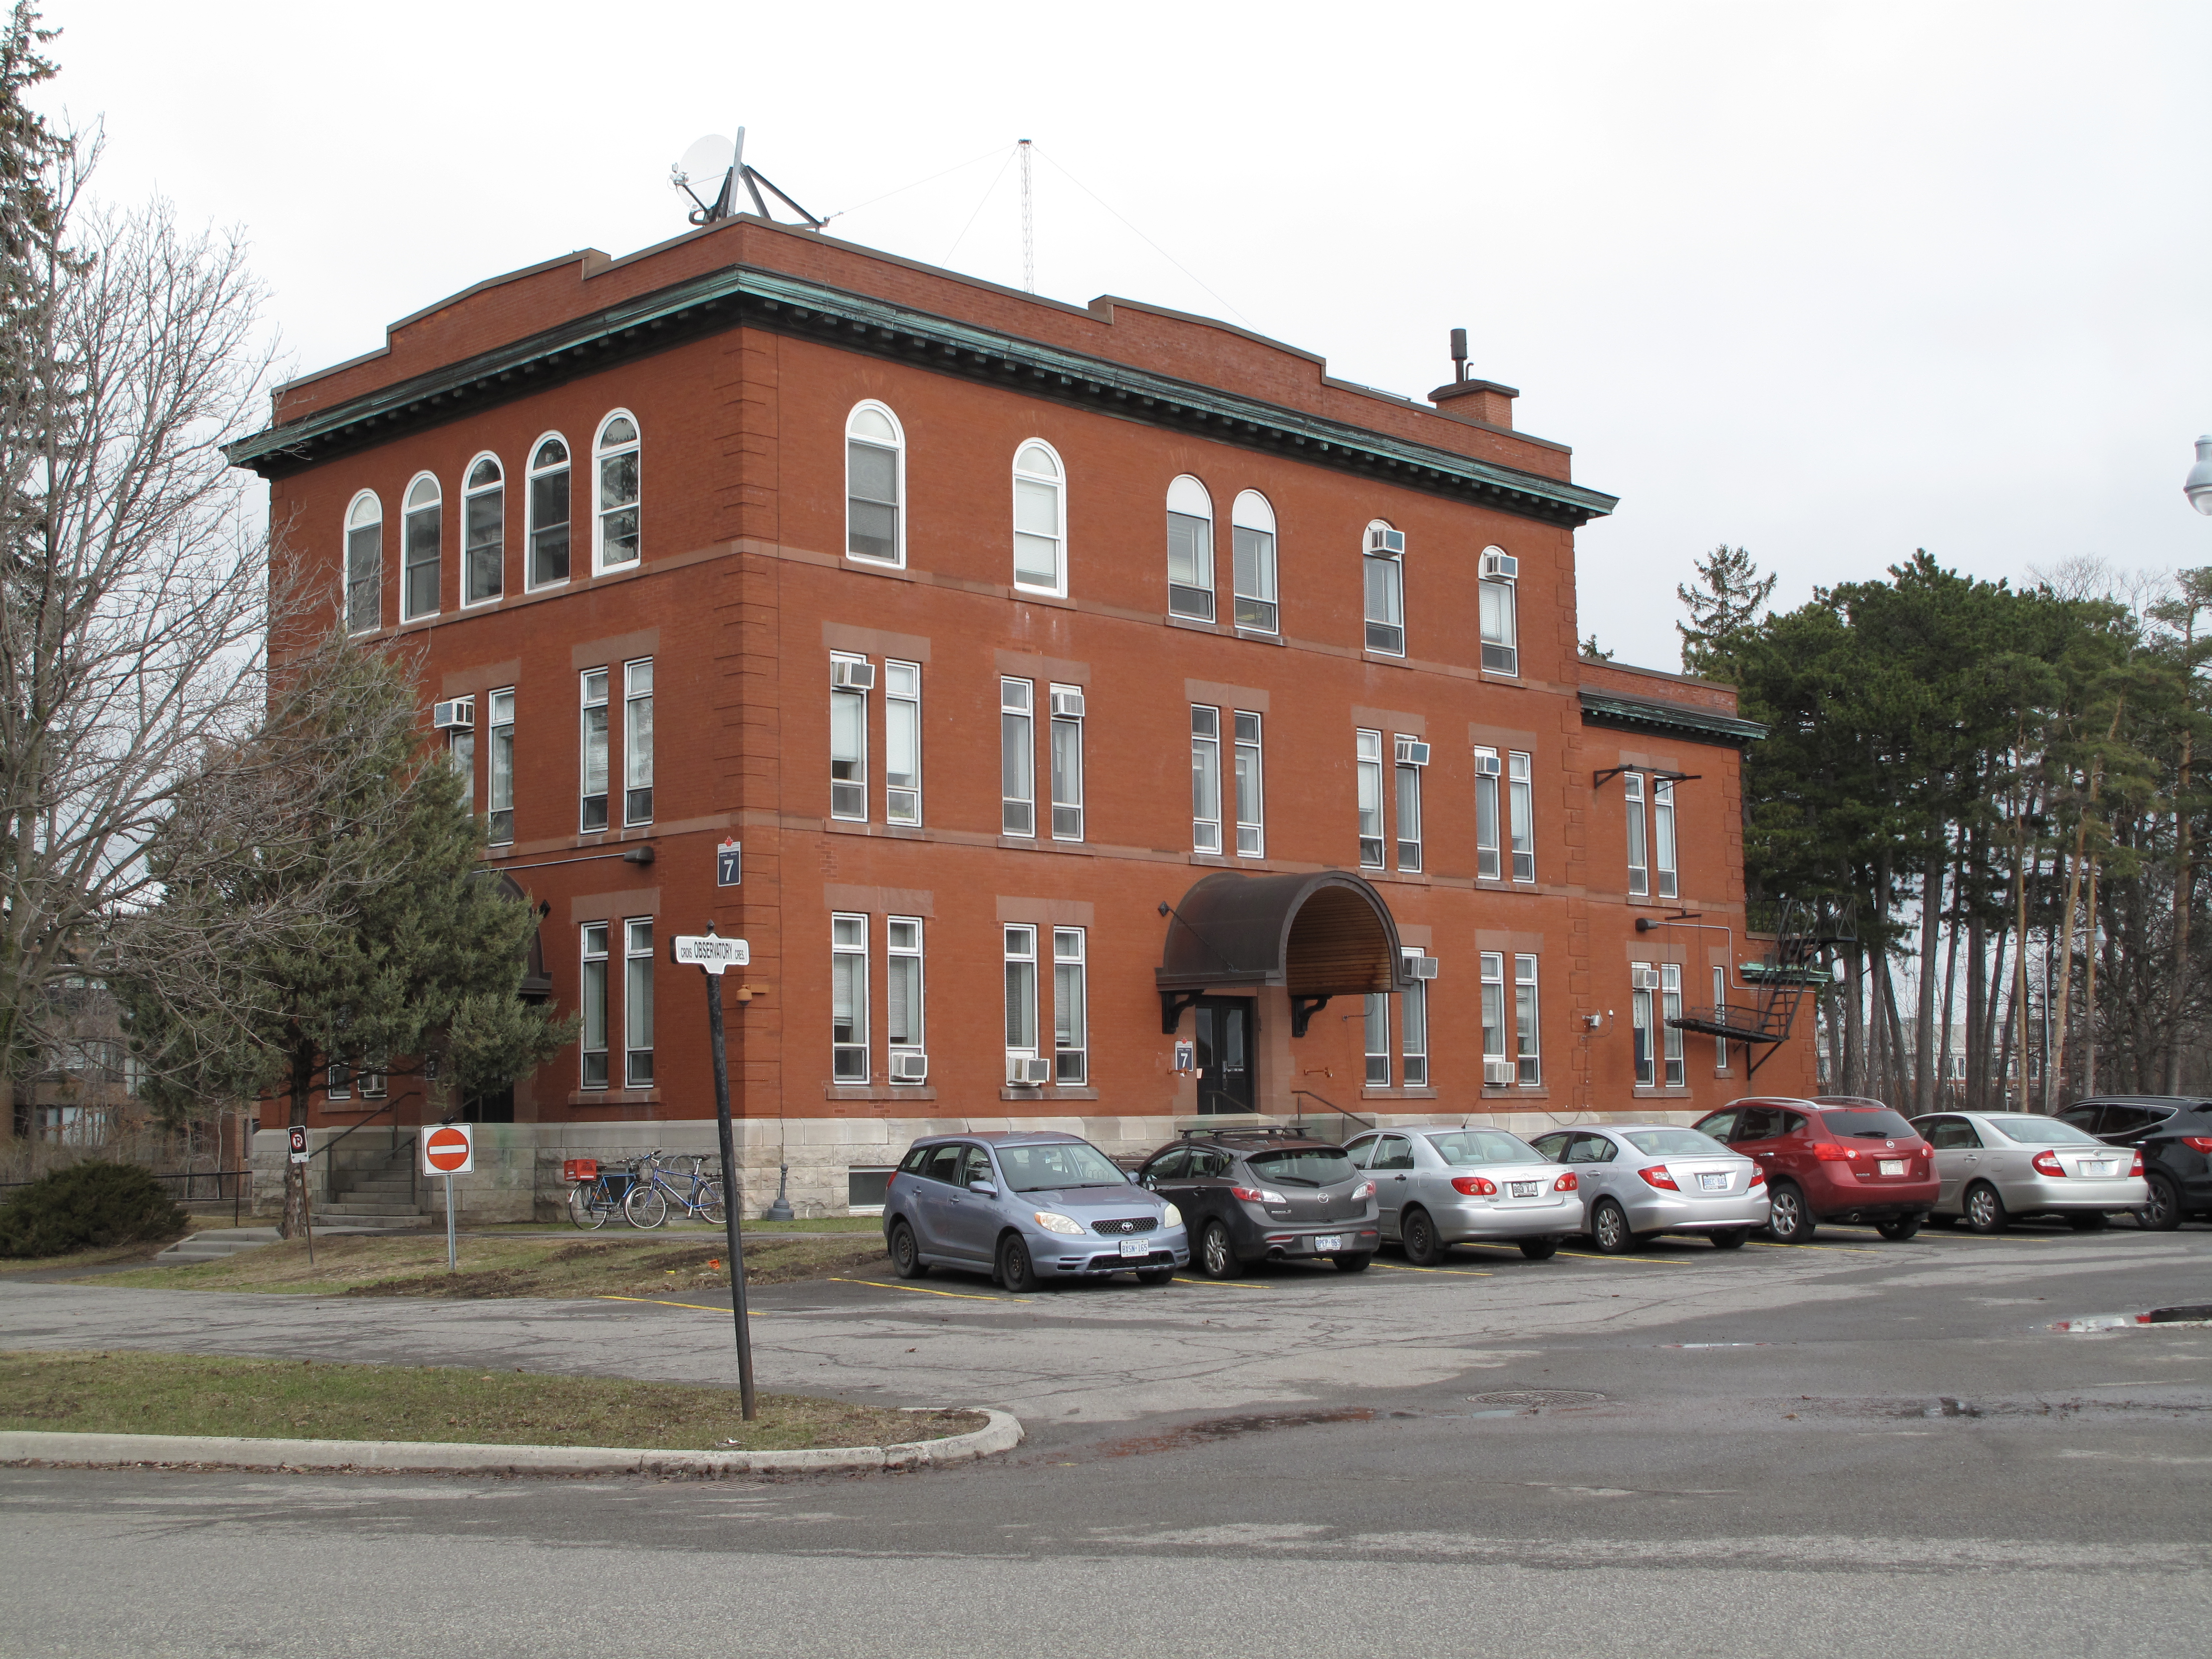 Exterior view of the three-storey rectangular brick building with a flat roof built in 1914.